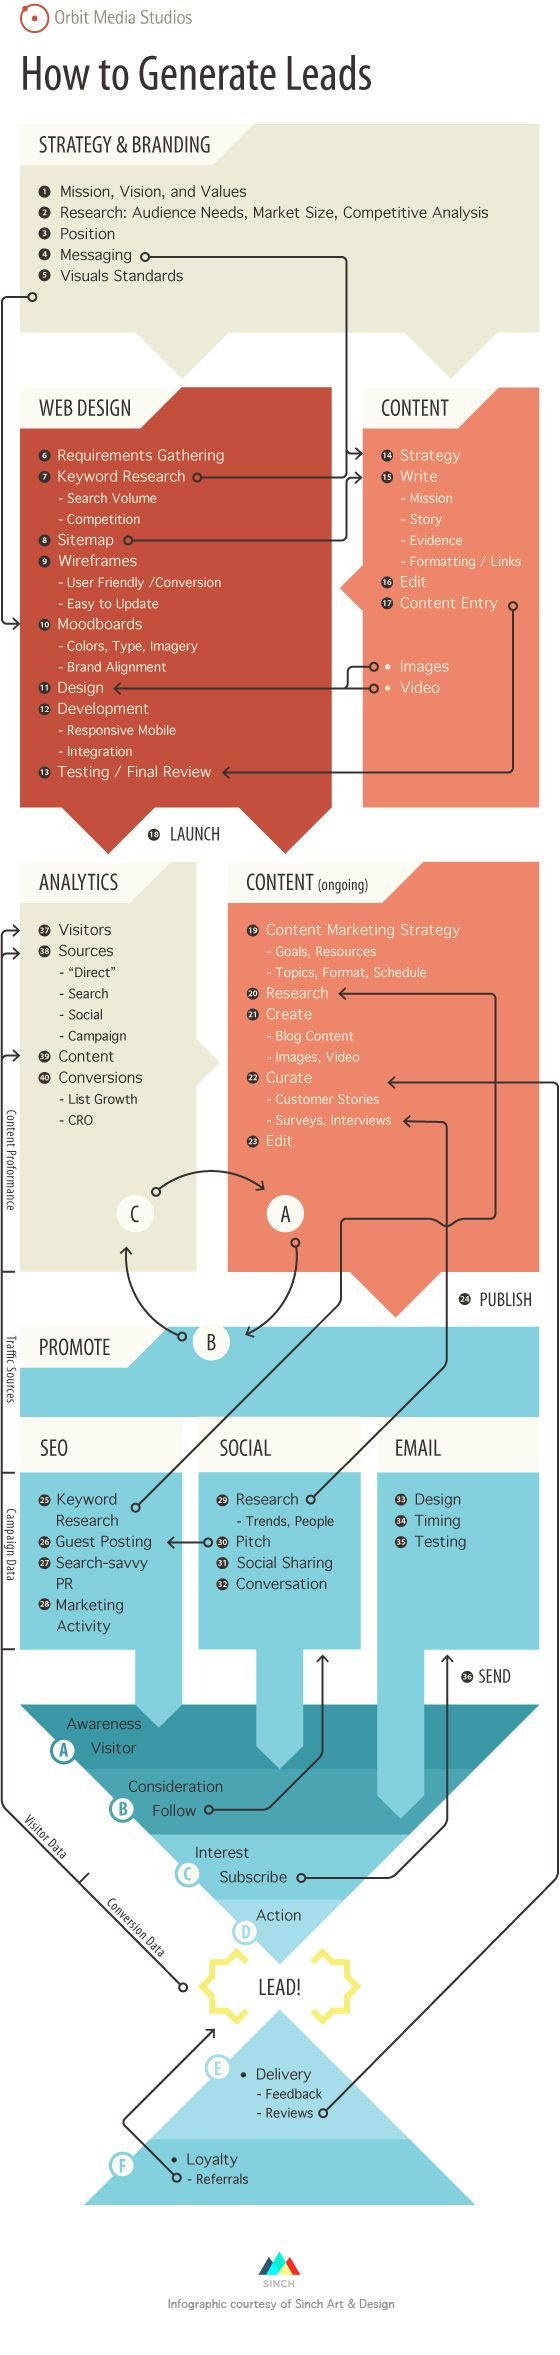 #Infographic: How to Generate Leads | by Sinch Art & Design via @Andreas Bergius & @Mari Smith #marketing #business | The accompanying article is a cut above the usual, expected suggestions. An excellent post!